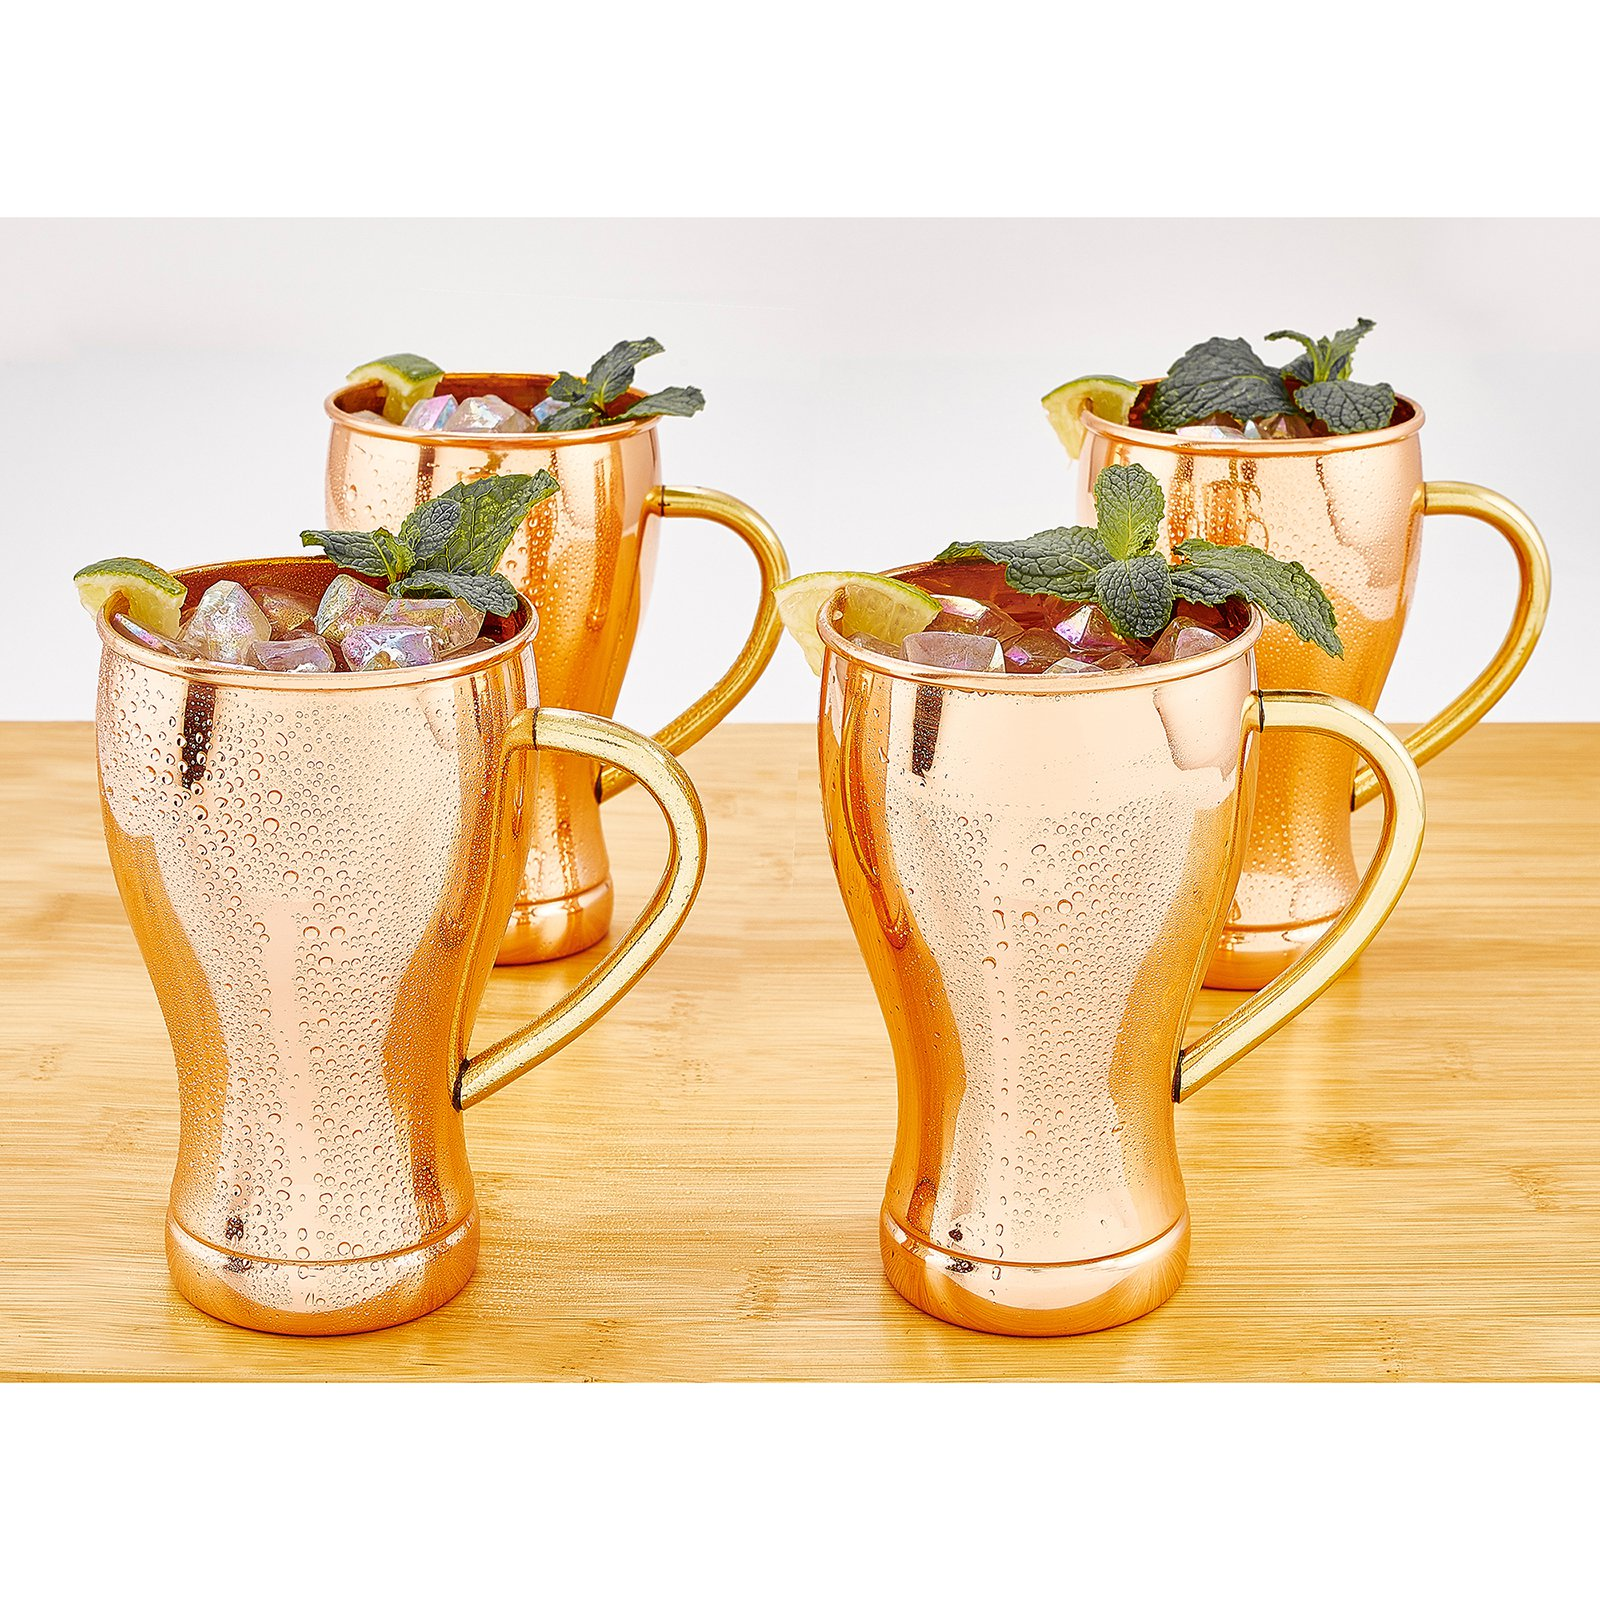 Old Dutch 14 oz. Moscow Mule Mugs - Set of 4